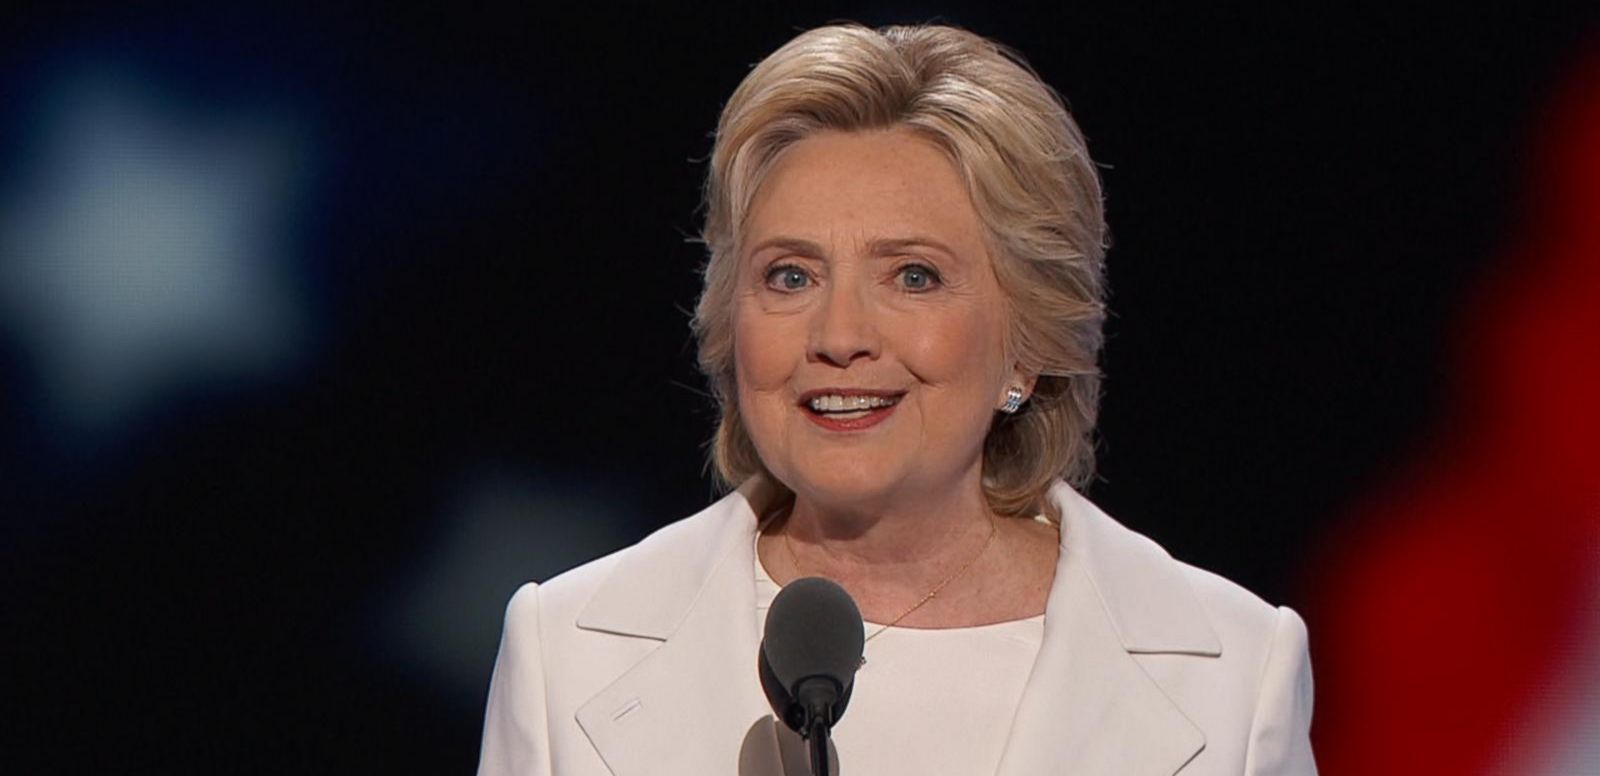 Hillary Clinton Accepts the Democratic Nomination